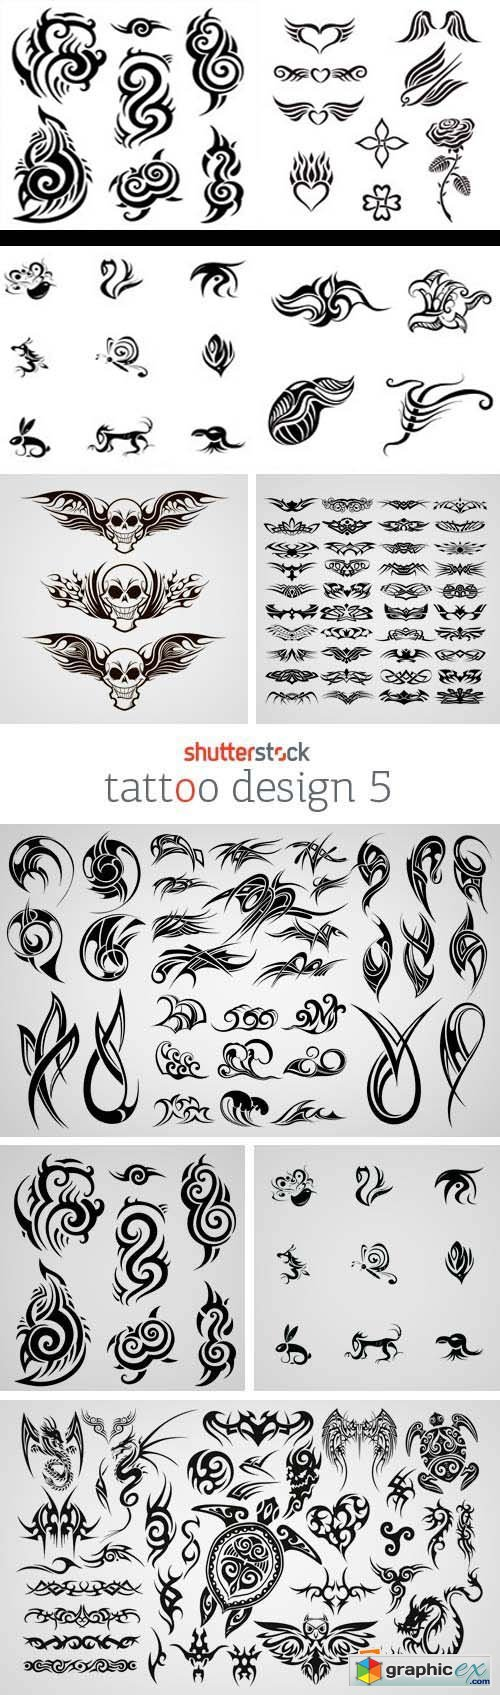 Amazing SS - Tattoo Design 5, 25xEPS